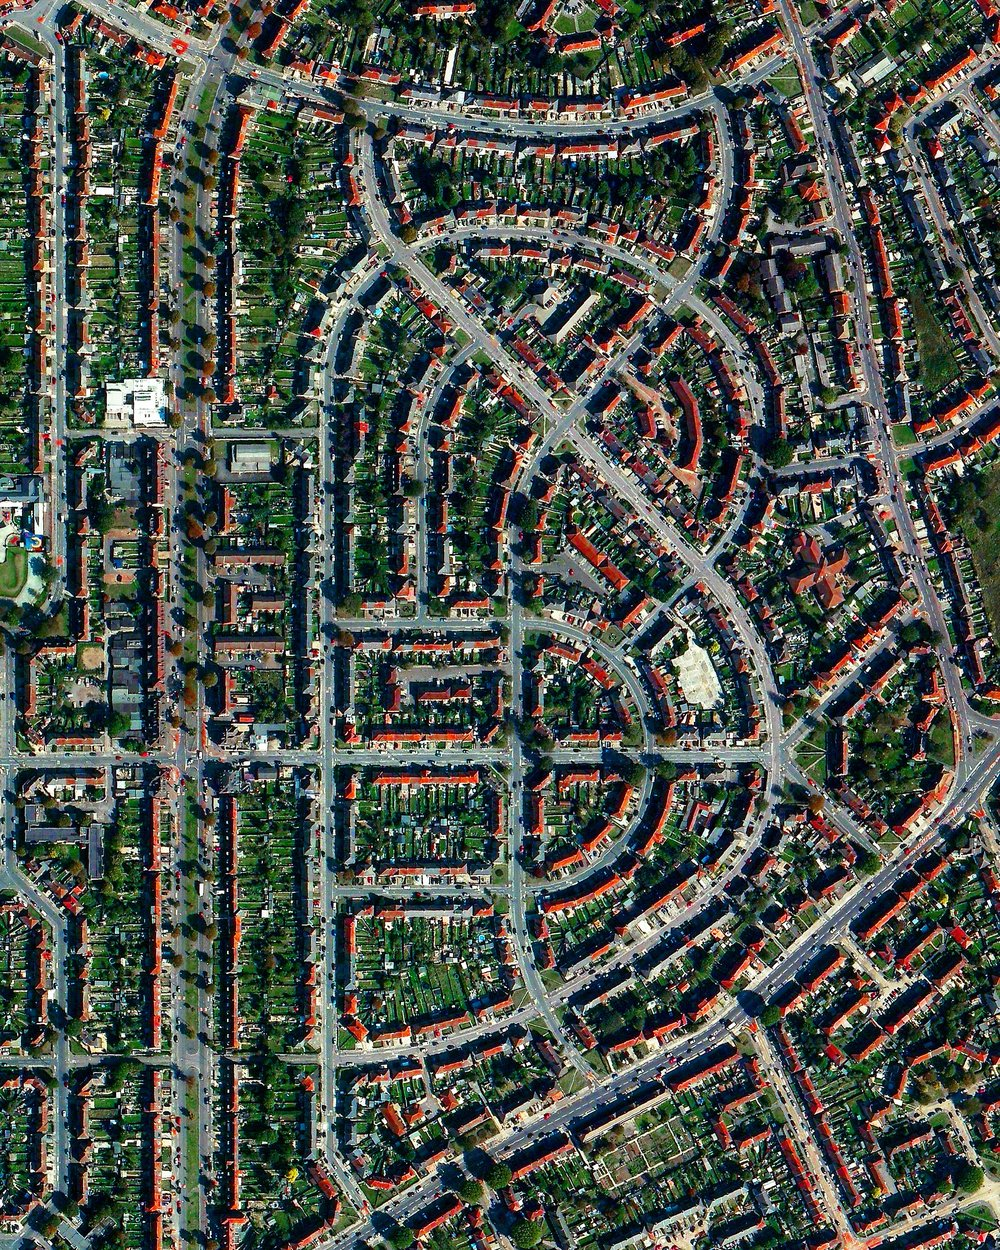 "To celebrate yesterday's launch of  ""Overview""  in the UK, here is a mesmerizing view of residential development in the London suburb of Dagenham. Thank you to everyone who has ordered the book, left an Amazon review, or simply helped to spread the word about the project so far. As I write this in New York, it is very powerful to see this idea resonate not only across the pond, but across the globe. If you have friends in the UK that you think would enjoy the Overviews or the book, a tag or share would be enormously helpful to keep the momentum going. I hope everyone has a fantastic weekend, wherever you are in the world!"